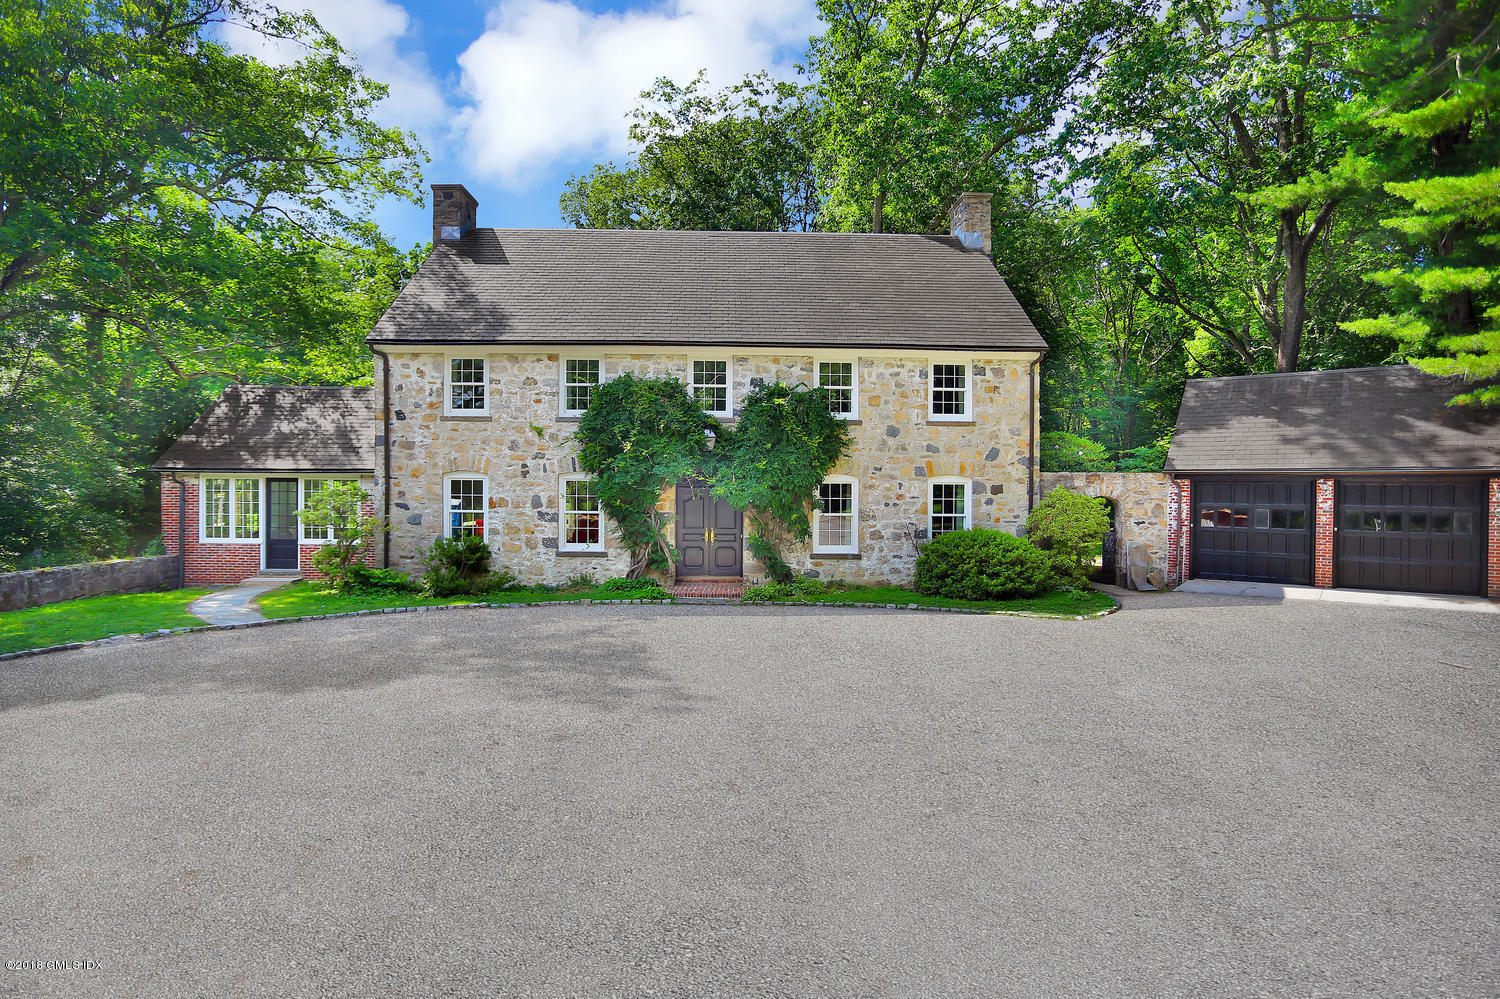 131 Old Mill Road,Greenwich,Connecticut 06831,5 Bedrooms Bedrooms,6 BathroomsBathrooms,Single family,Old Mill,105852